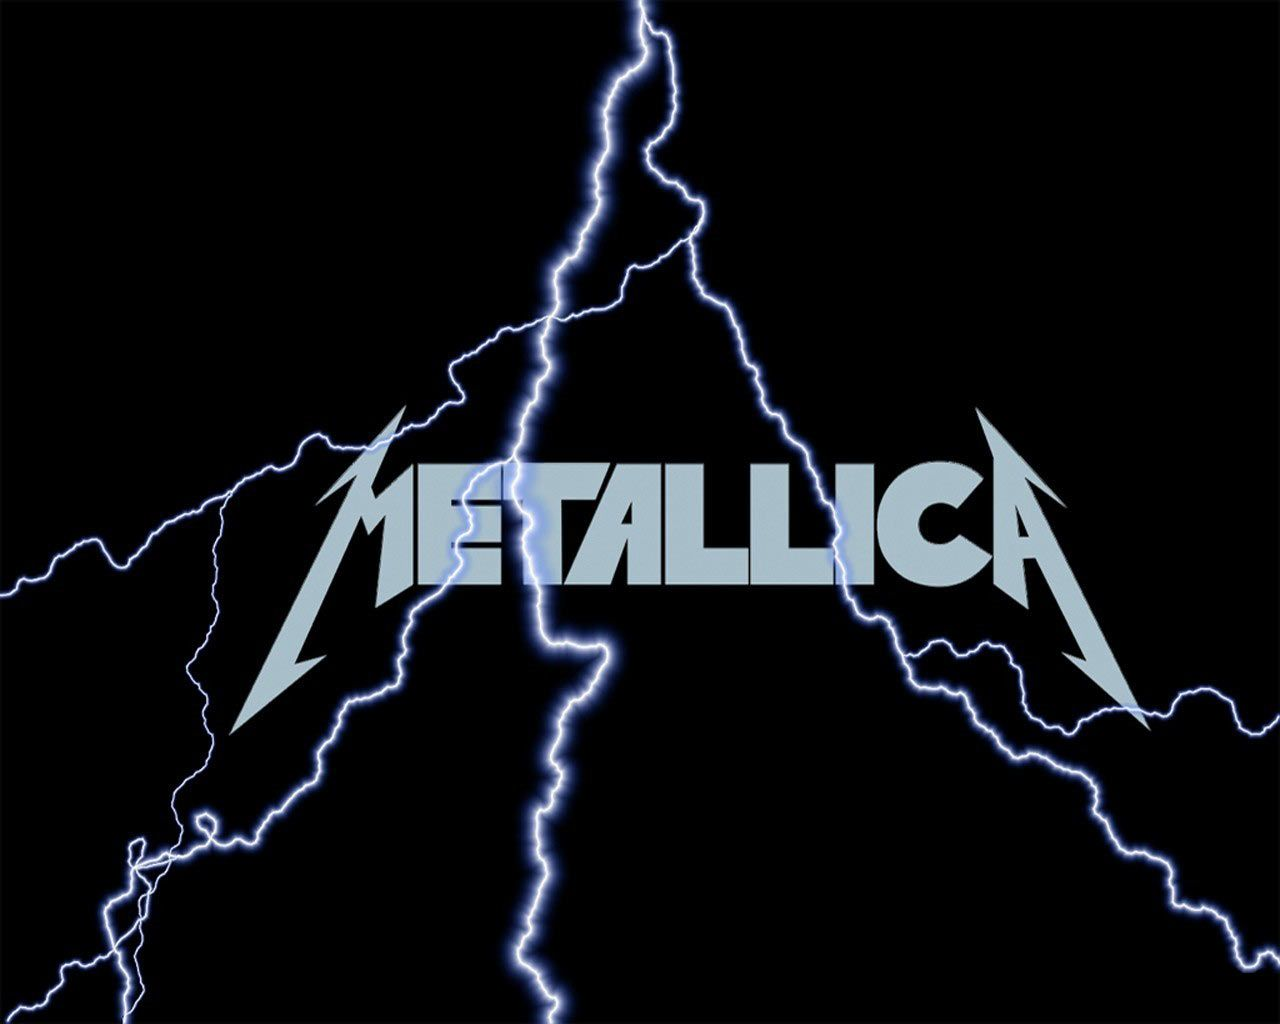 Metallica Wallpapers And Music Videos